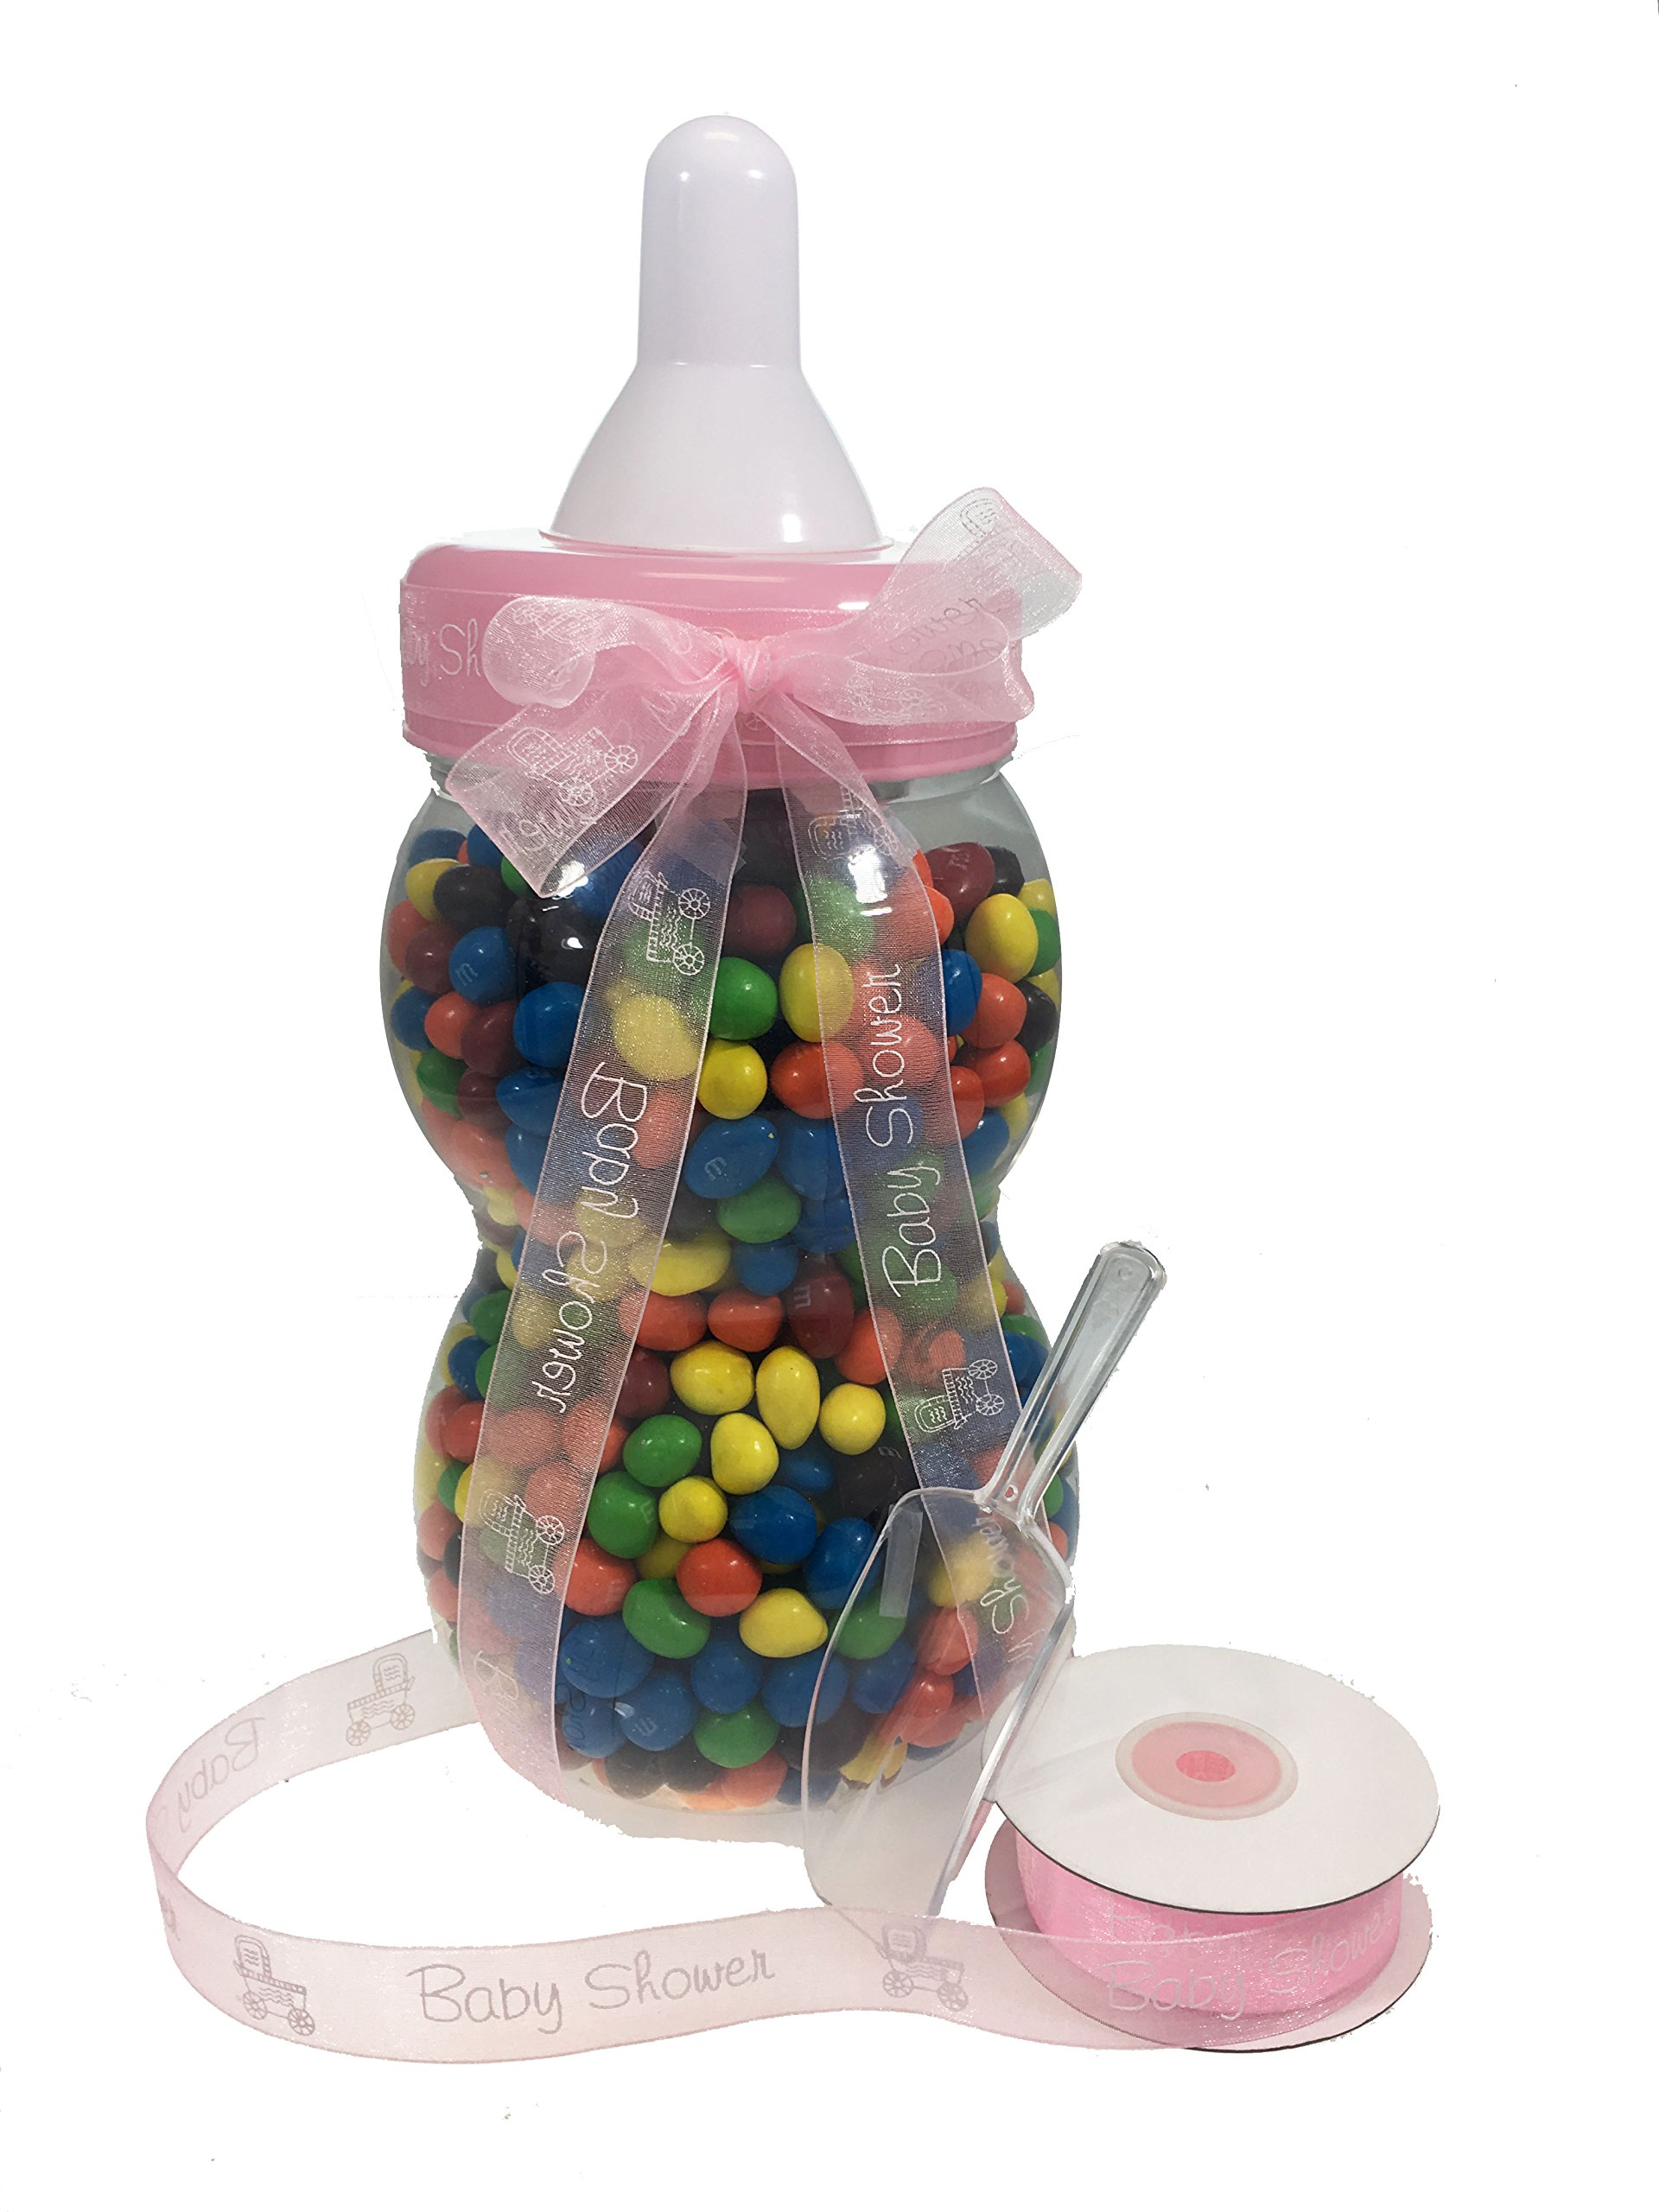 13.5'' inch Plastic Milk Bottle - Baby Shower Game, Fillable Baby Shower Bank Plastic Decoration Centerpiece (Pink) by LACrafts (Image #1)